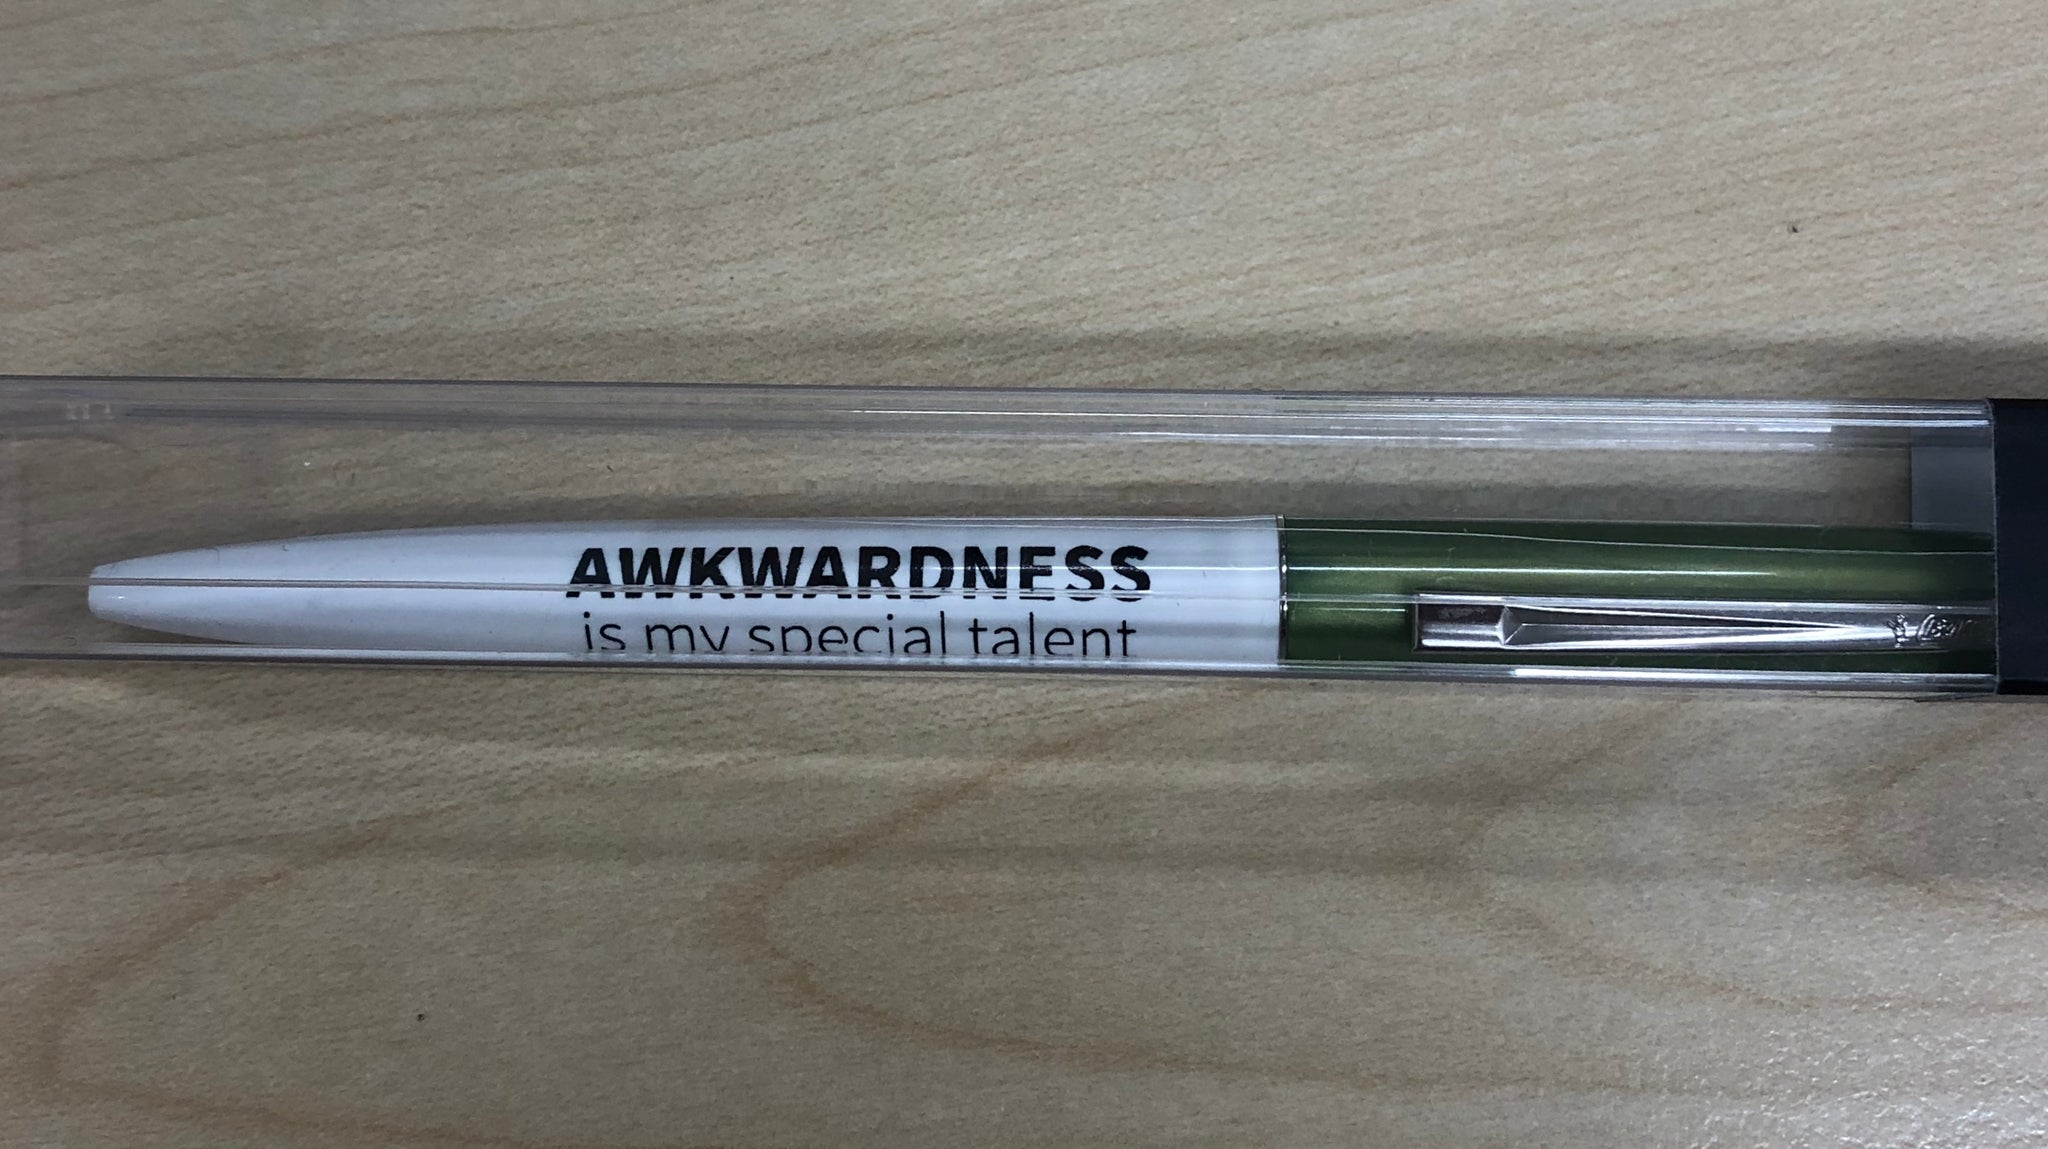 Awkwardness is my special talent pen